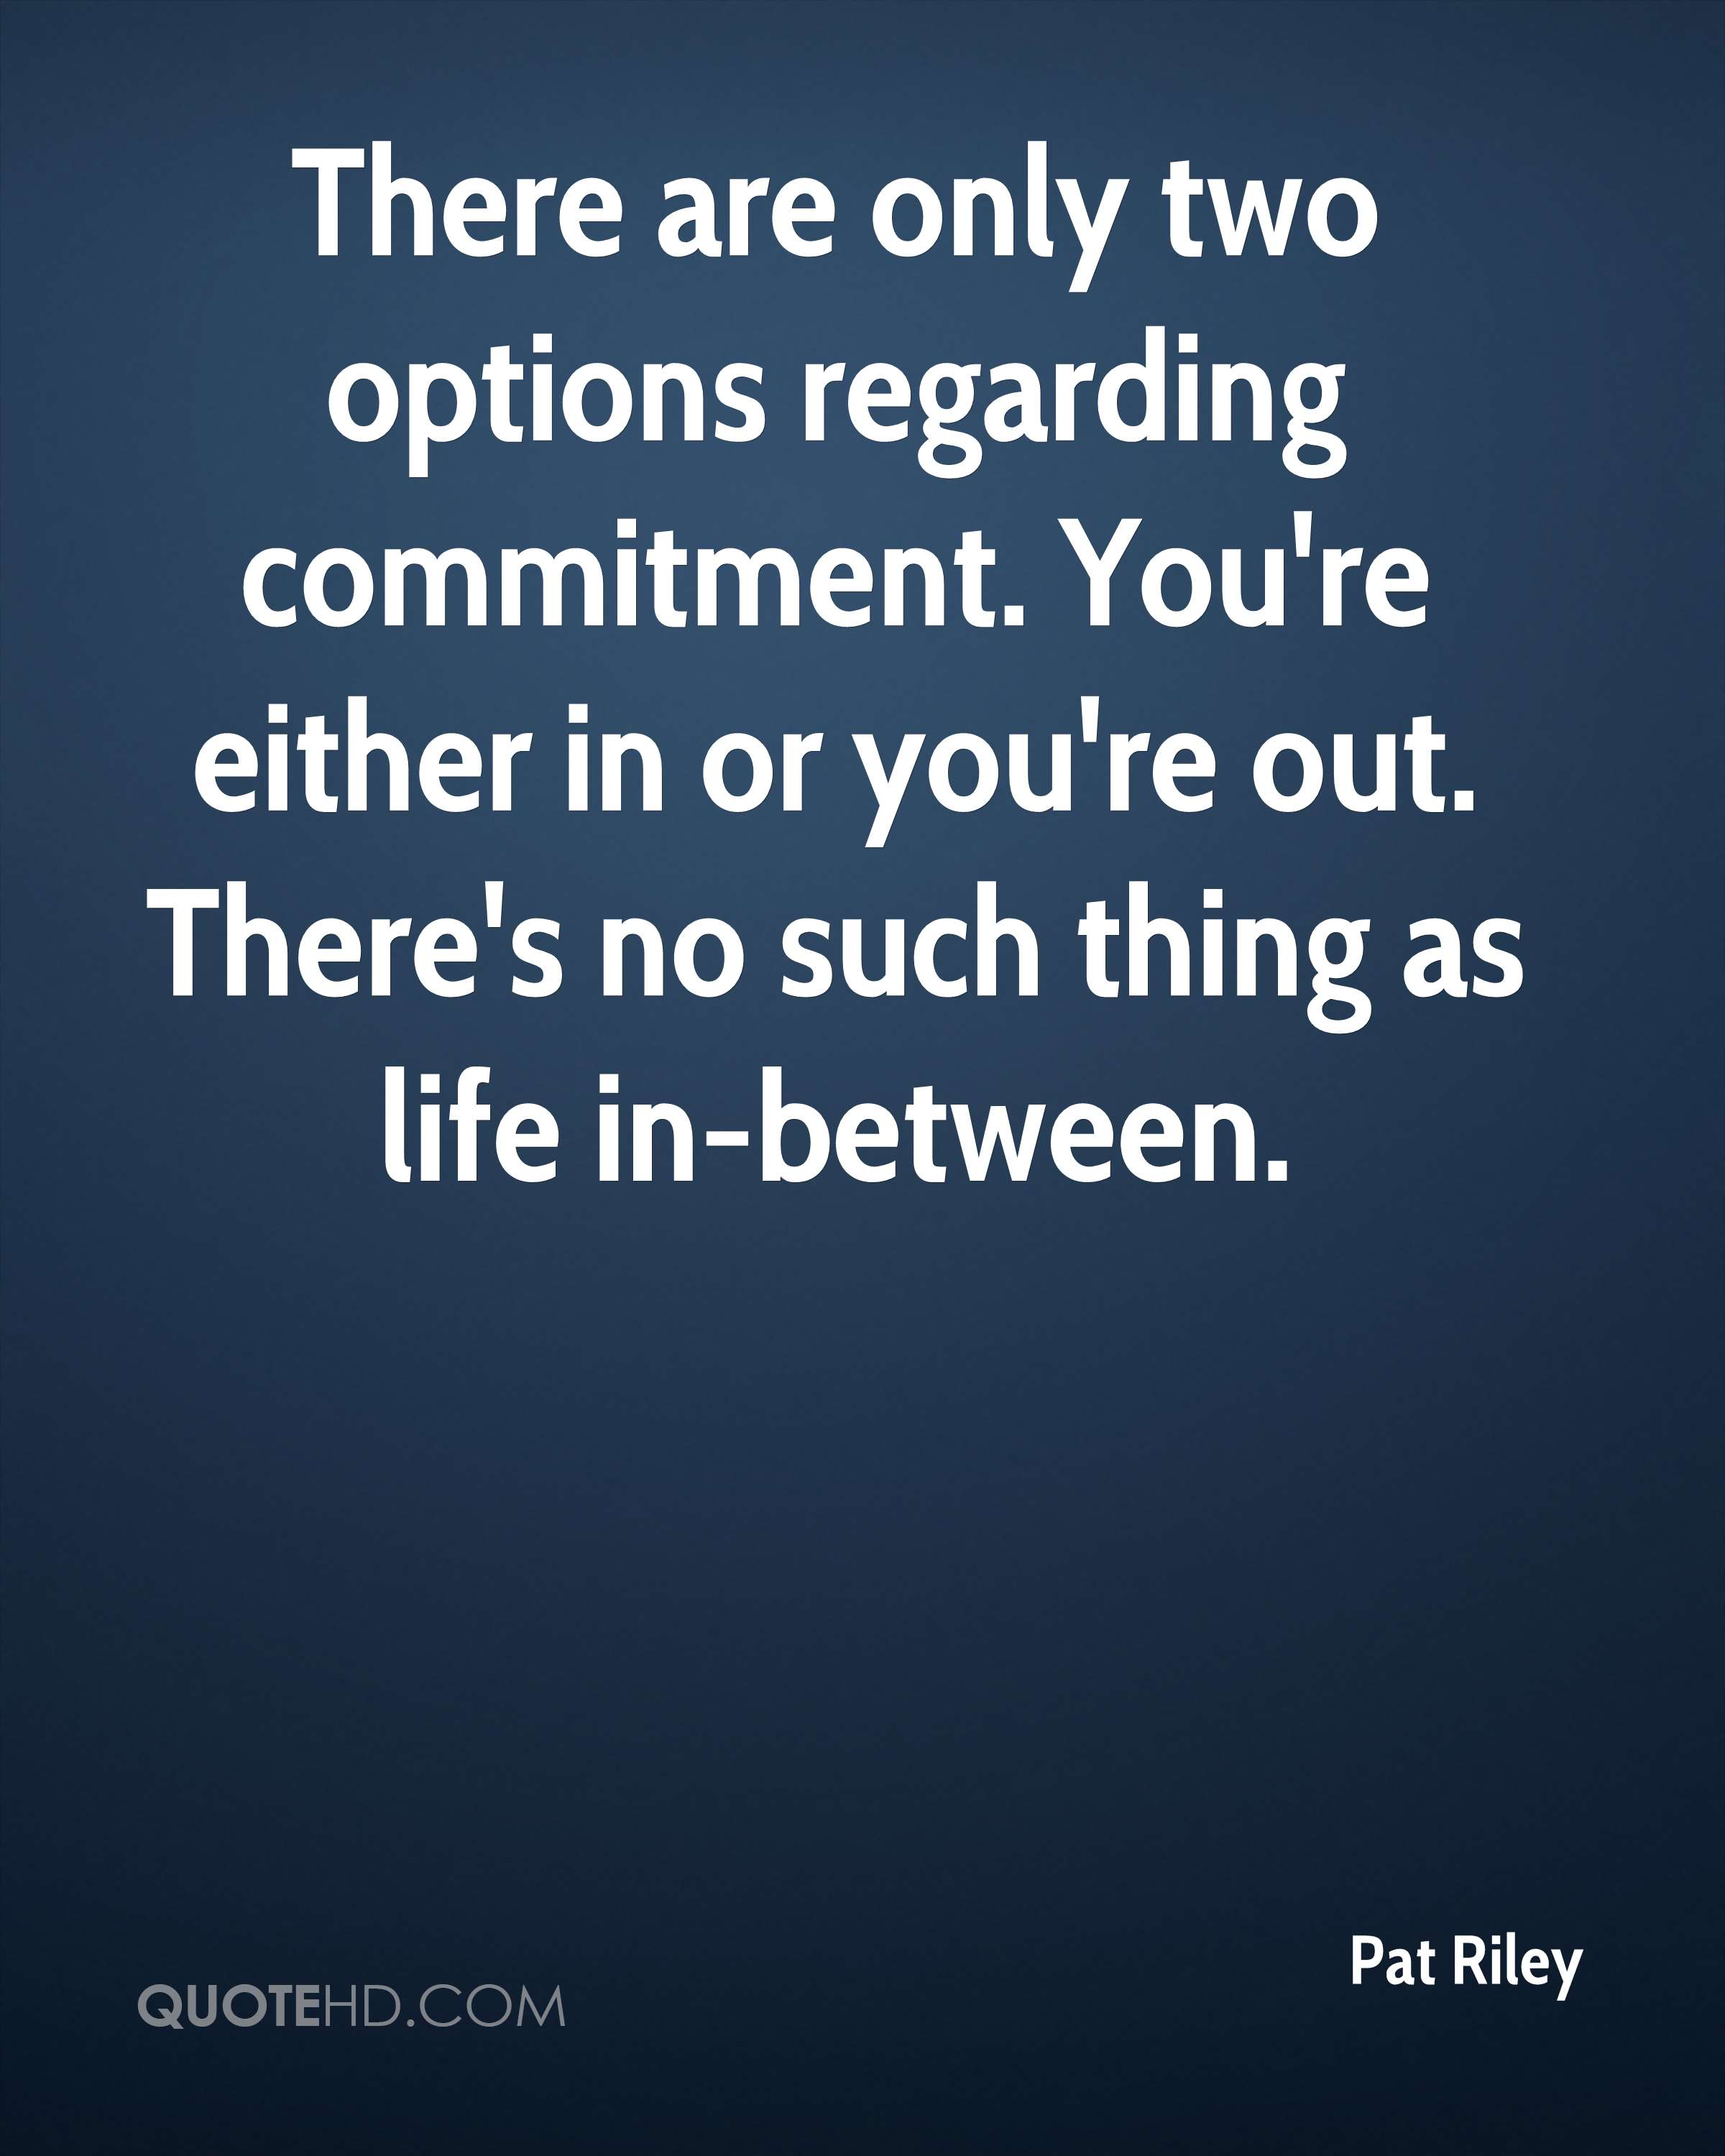 There are only two options regarding commitment. You're either in or you're out. There's no such thing as life in-between.